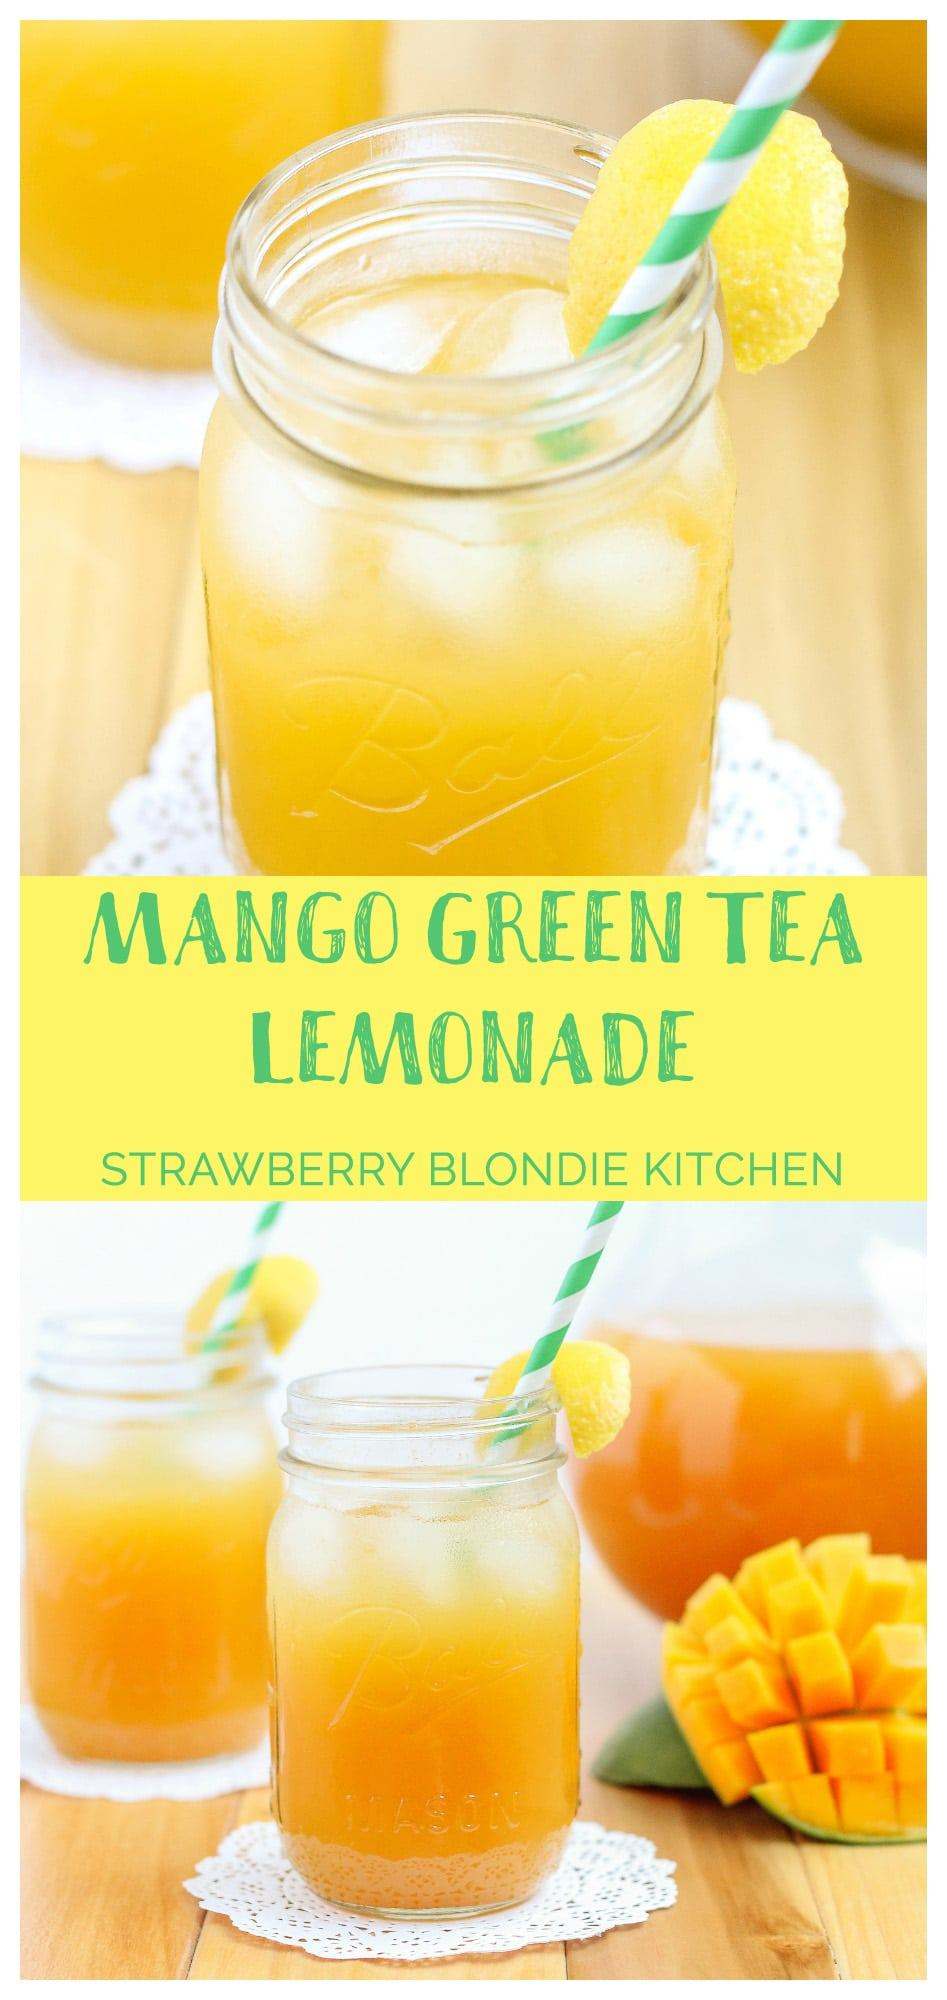 mango green tea lemonade strawberry blondie kitchen